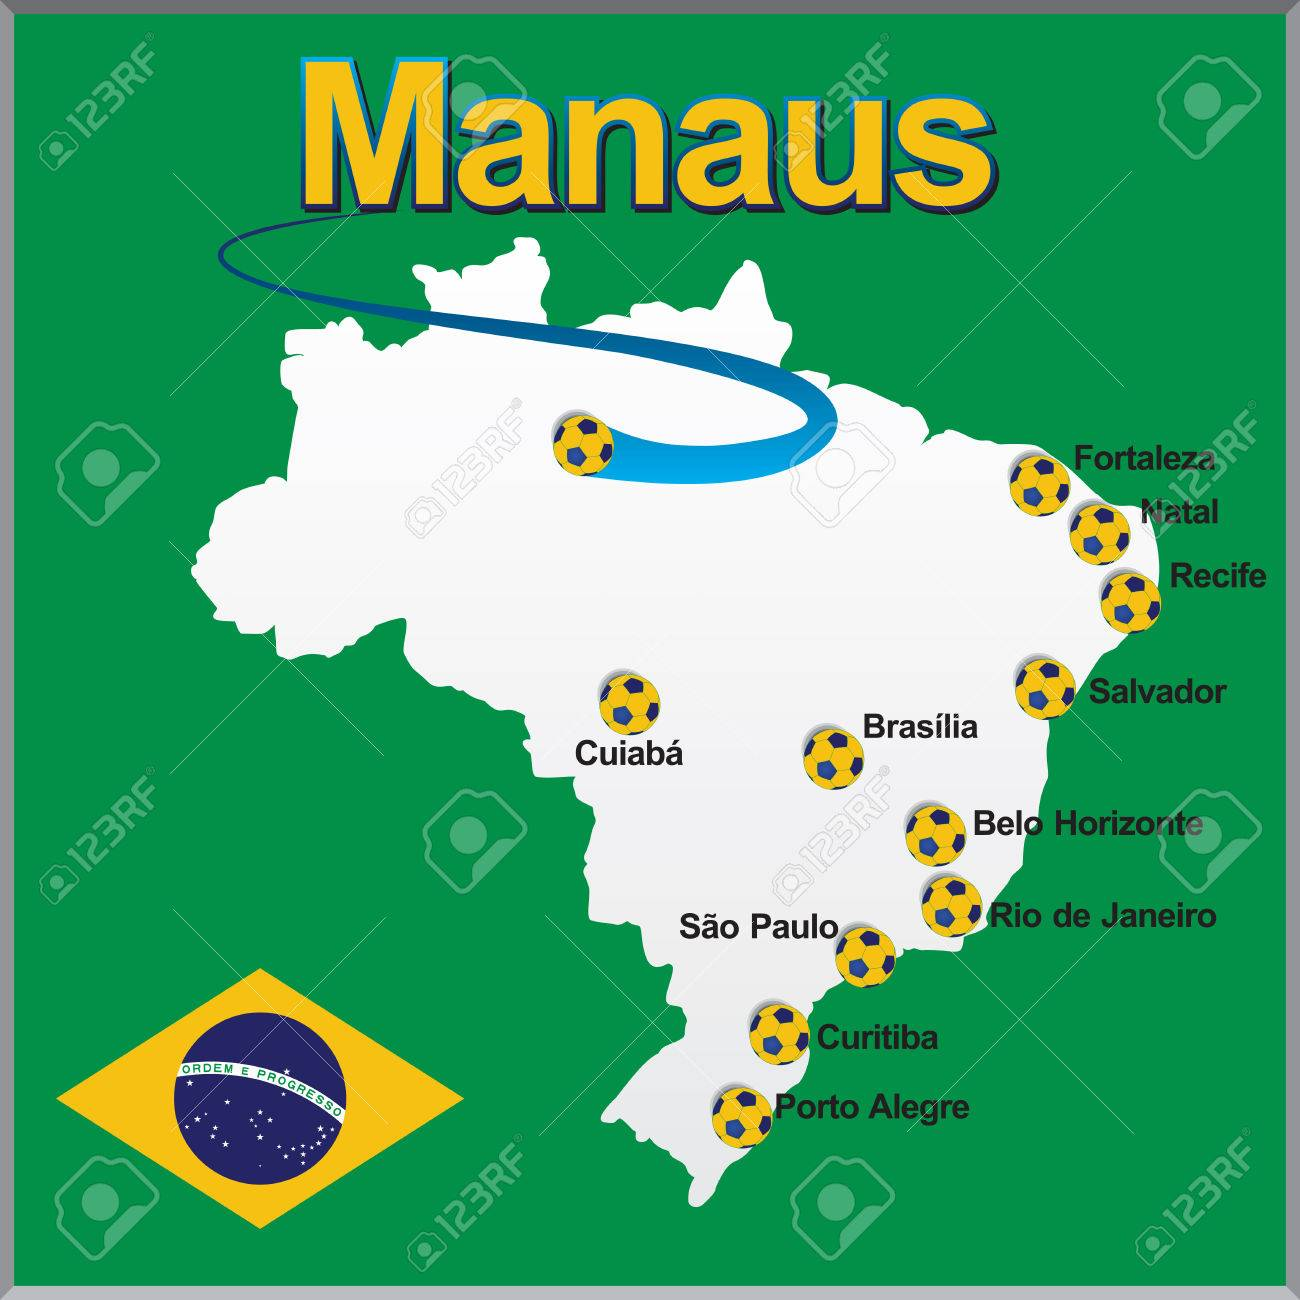 Manaus Brazil Map Soccer Ball Royalty Free Cliparts Vectors And